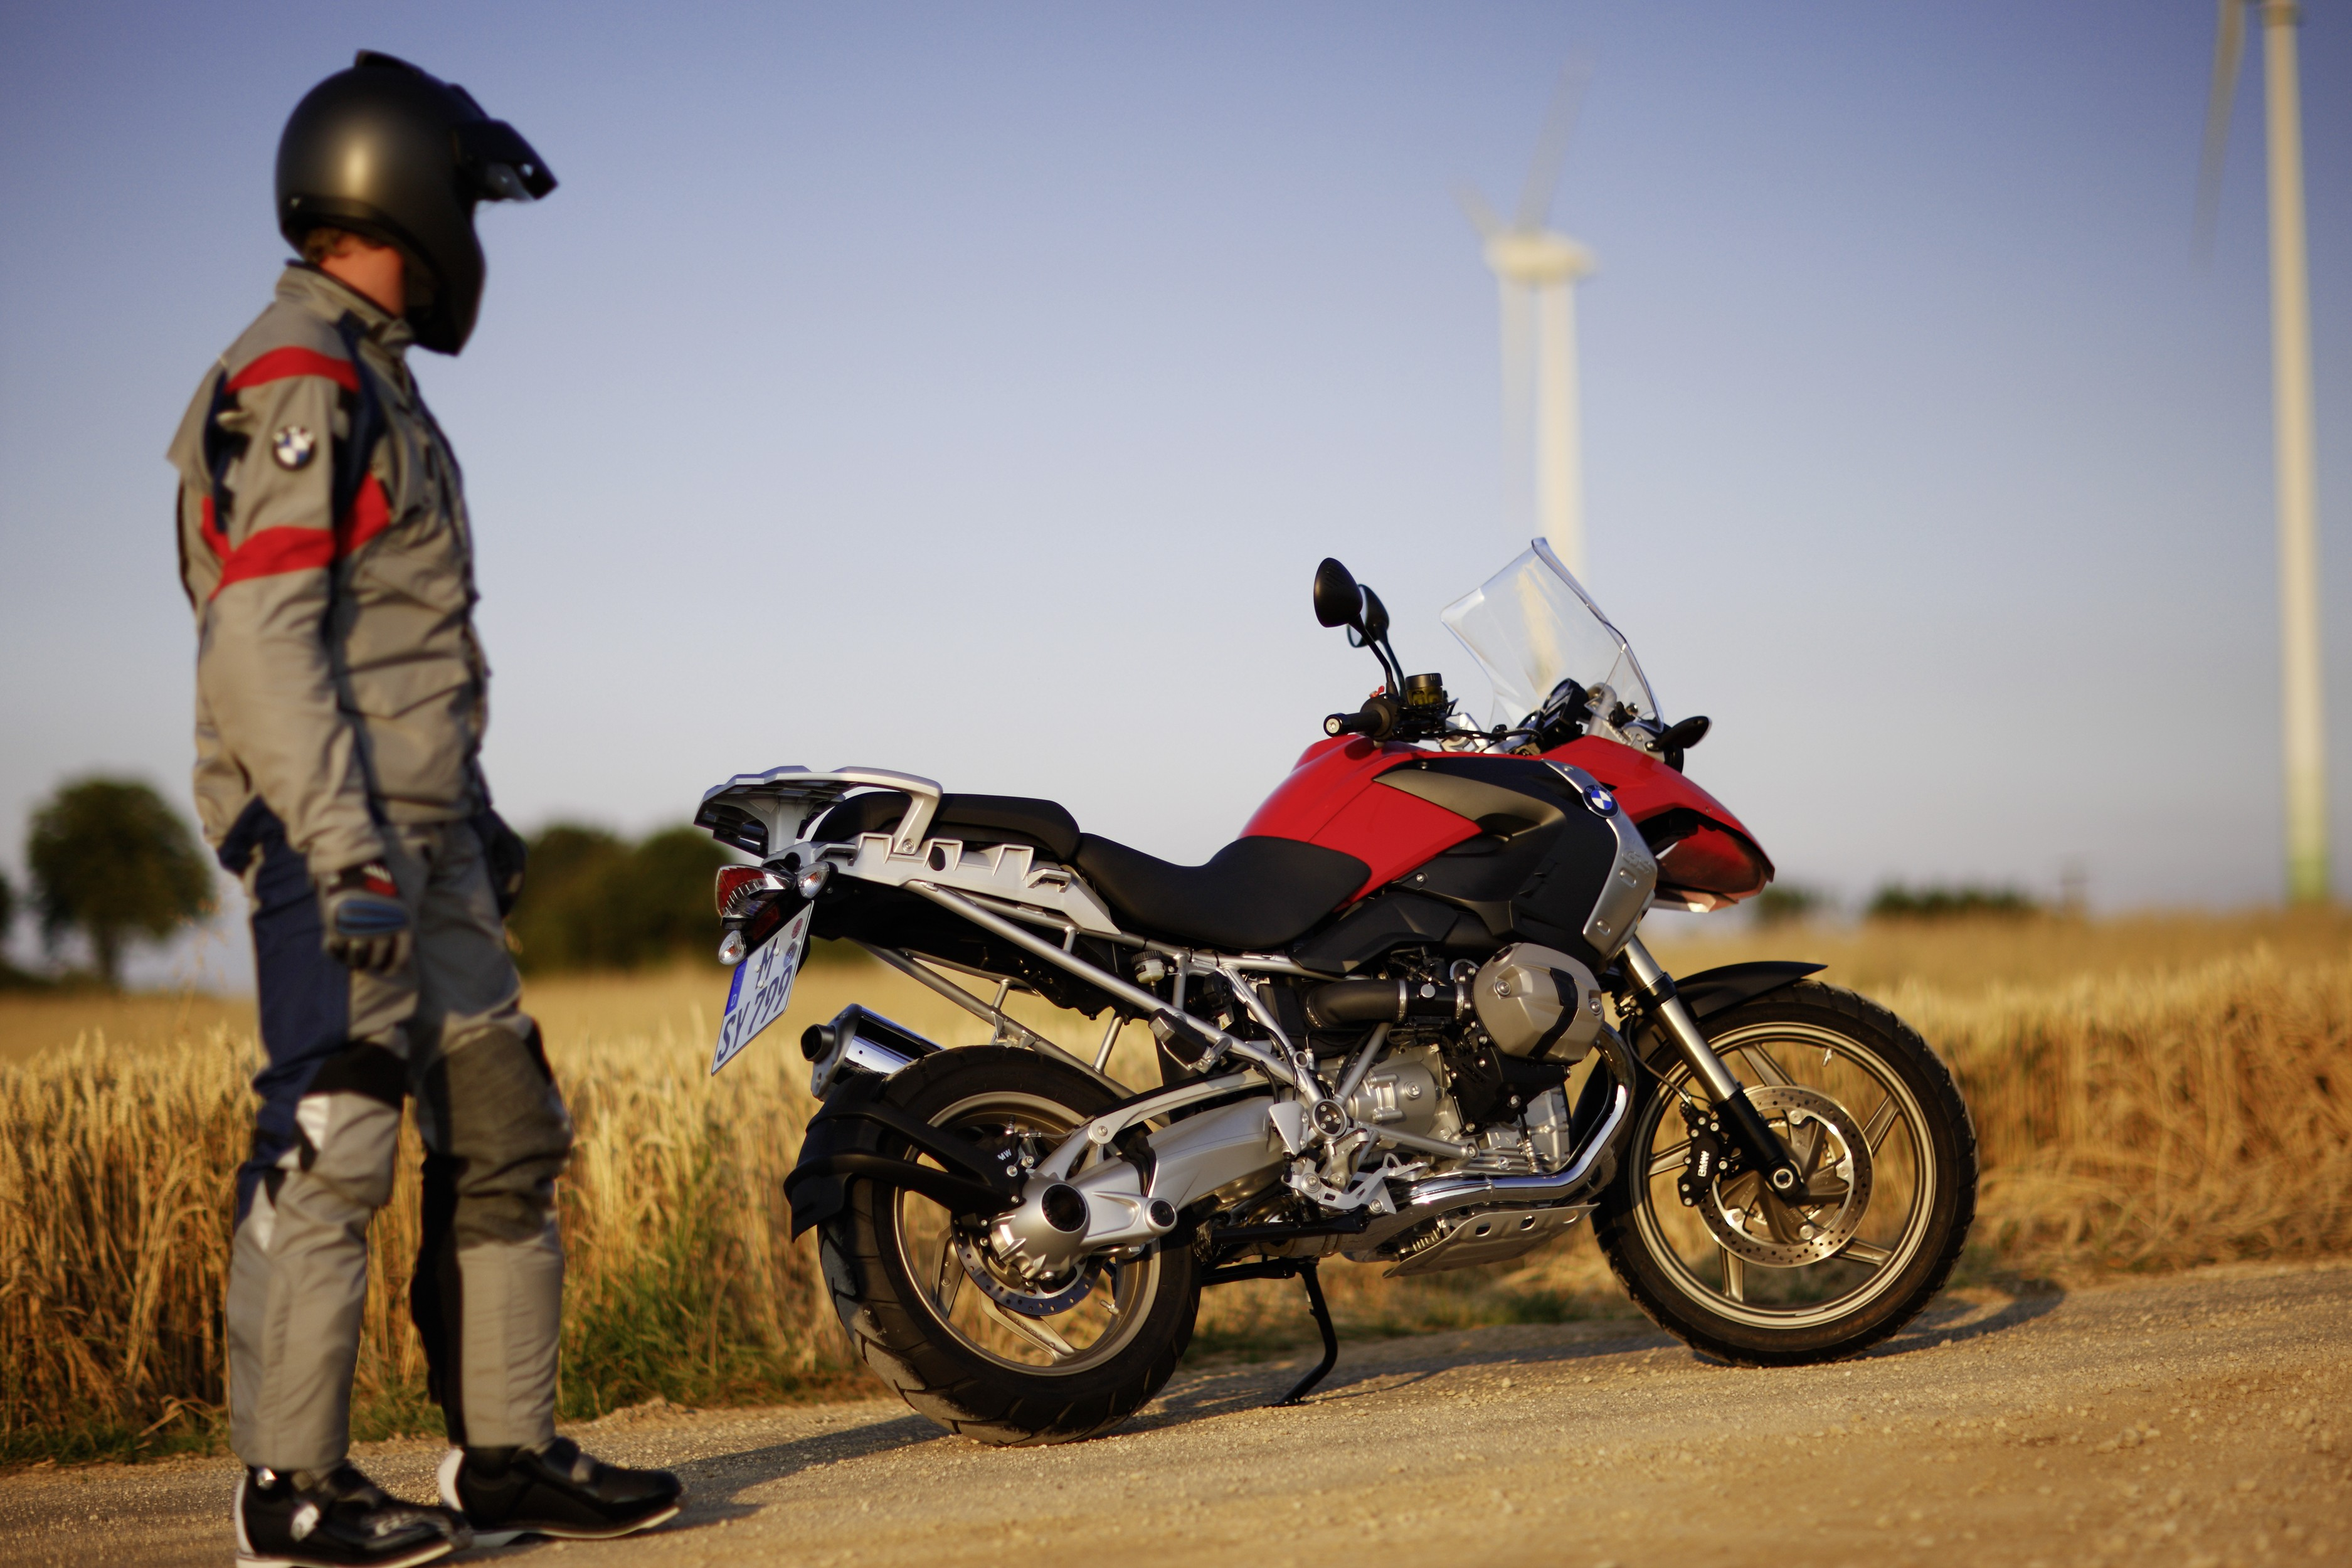 2008 BMW R 1200 GS ADVENTURE Review - Top Speed